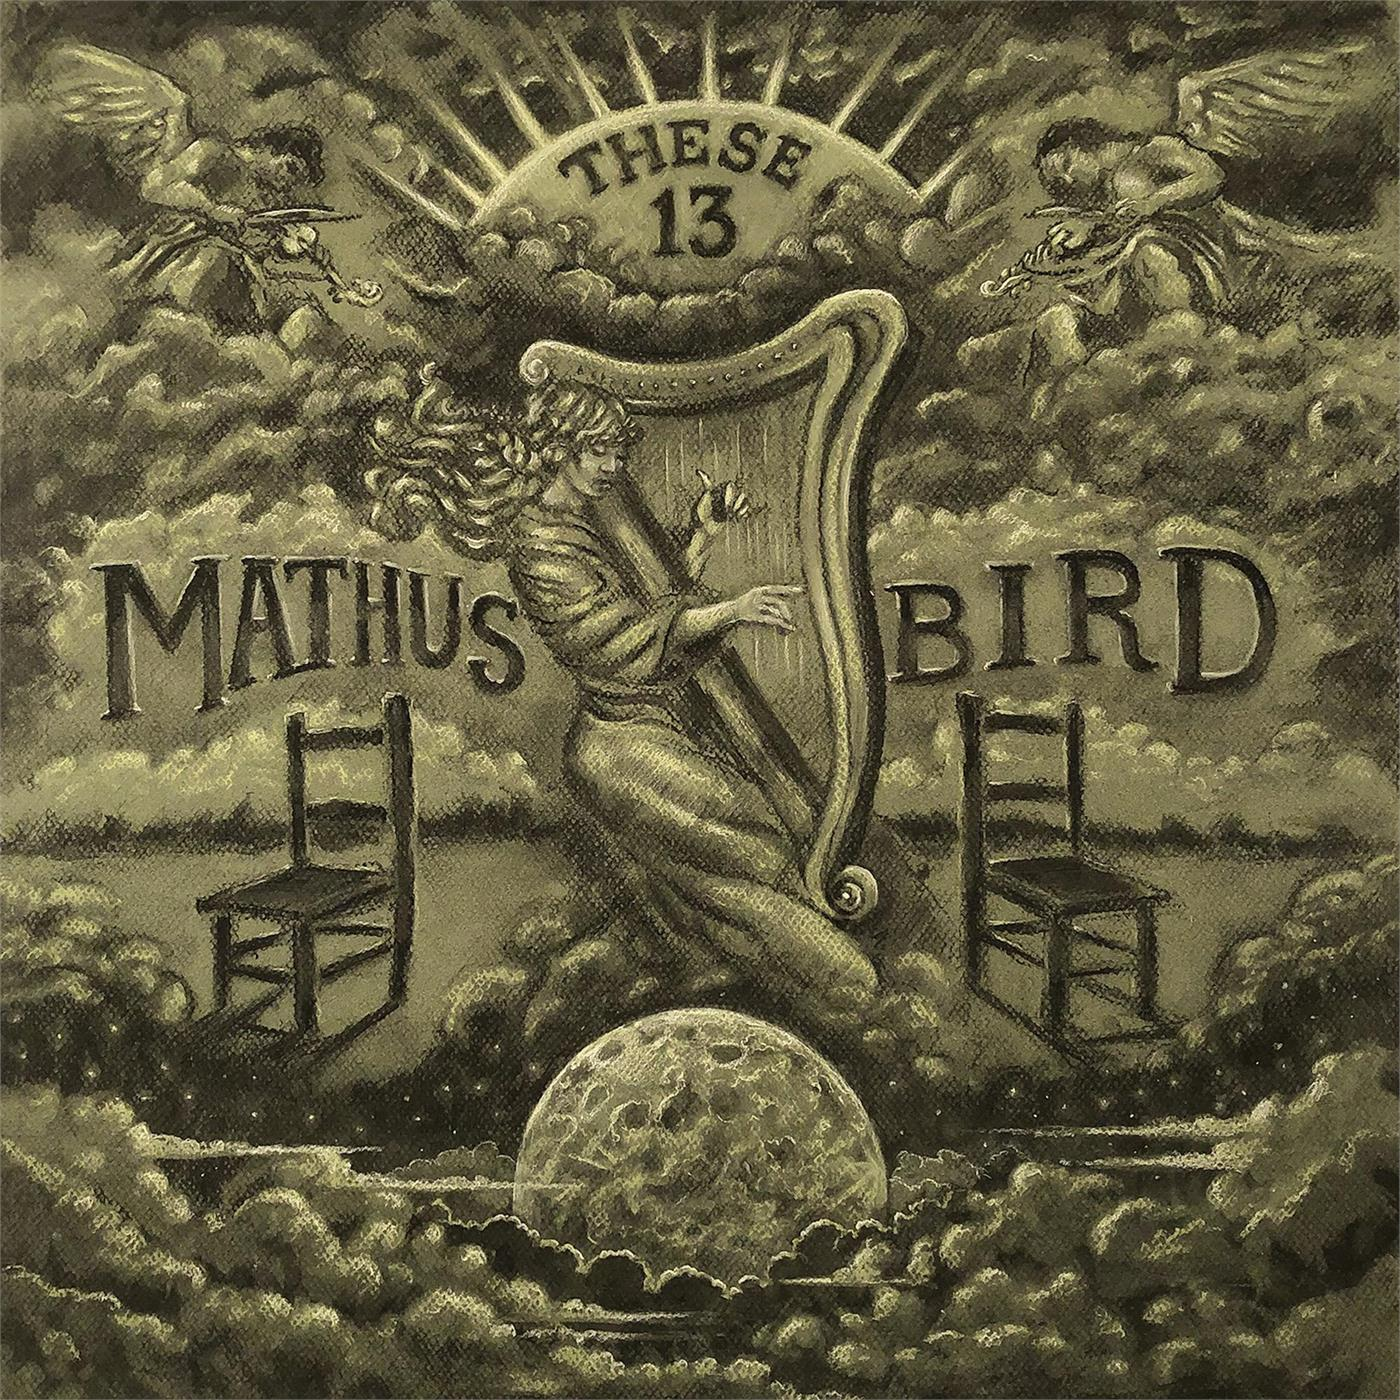 Jimbo Mathus & Andrew Bird - These 13 [LTD LP] (opaque grey marble)